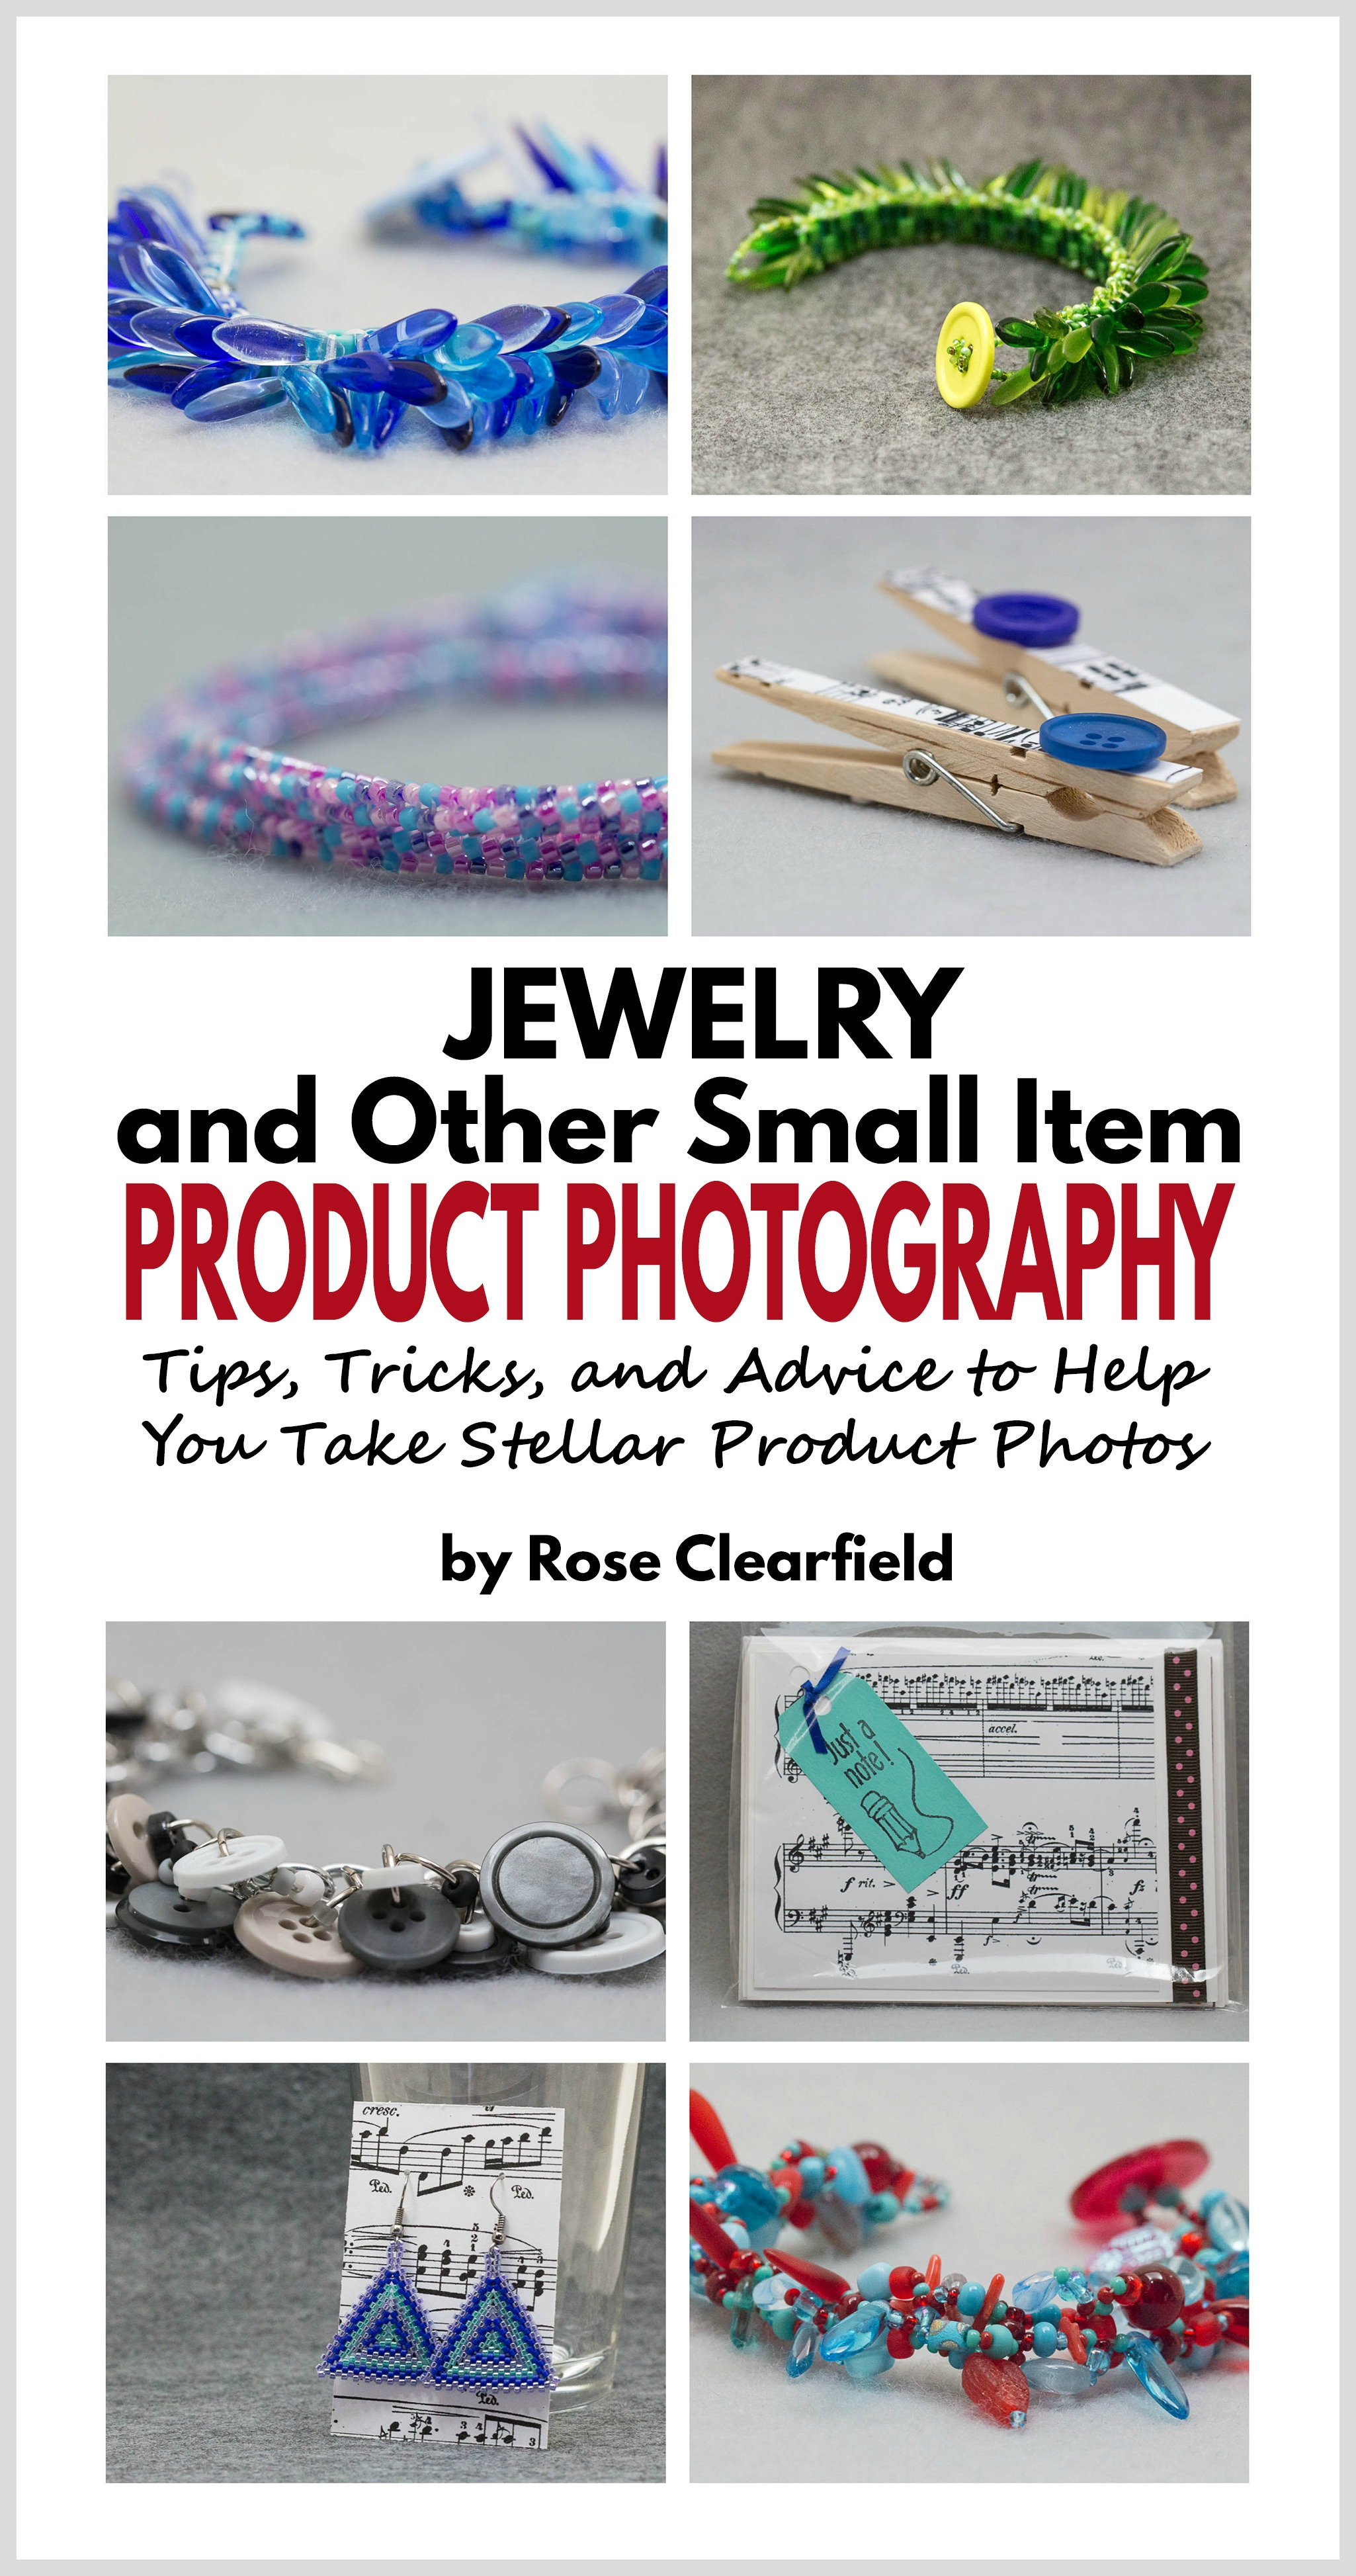 Jewelry and Other Small Item Product Photography ebook. Start improving your product photography skills today! | https://www.roseclearfield.com